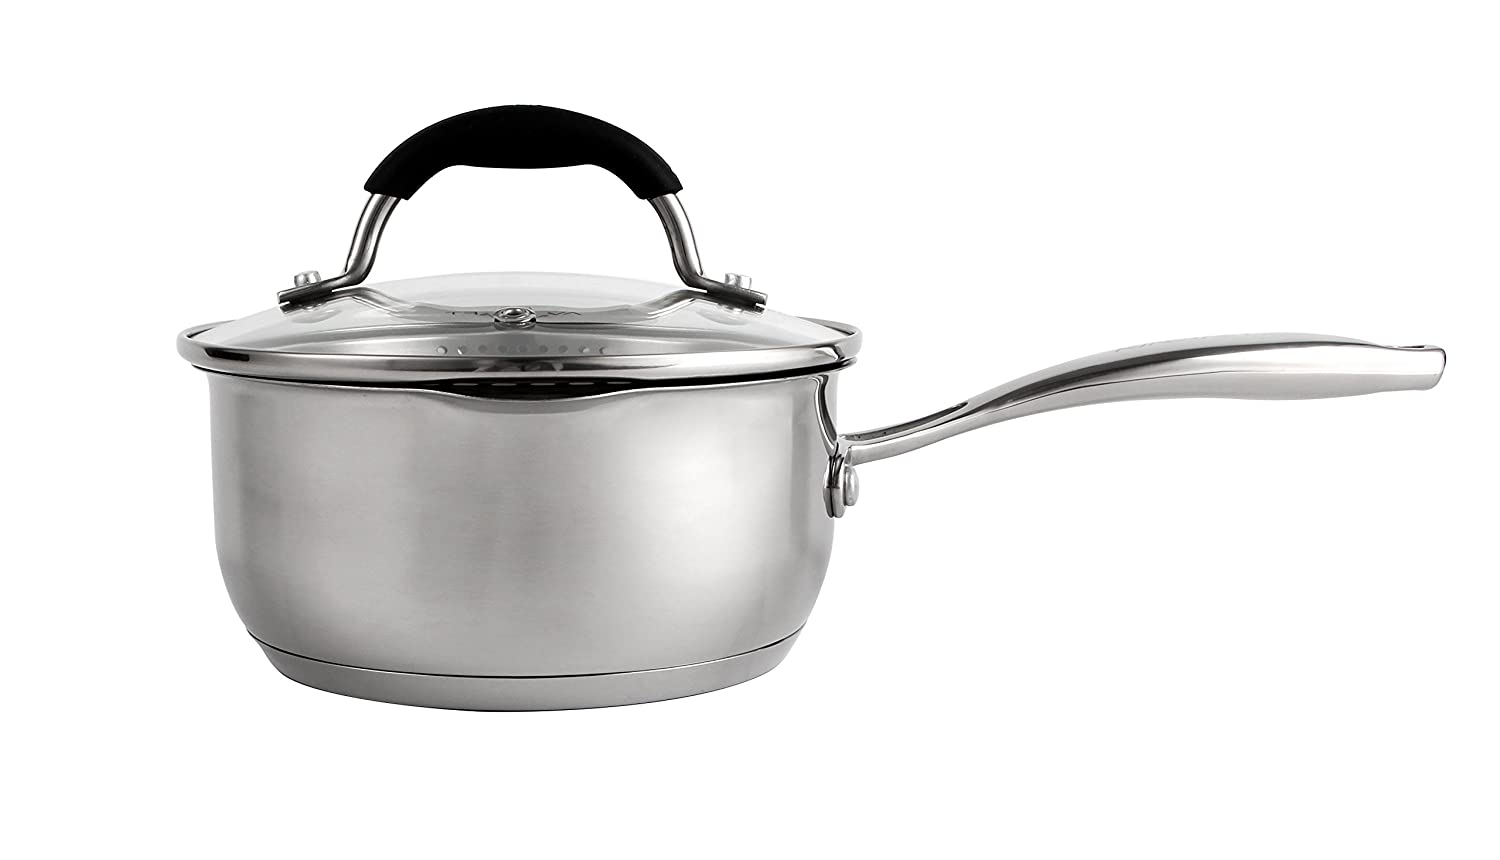 AVACRAFT Stainless Steel Saucepan with Glass Lid Two Side Spouts for Easy Pour with Ergonomic Handle Strainer Lid 1.5 Quart Sauce Pot Multipurpose Sauce Pan with Lid